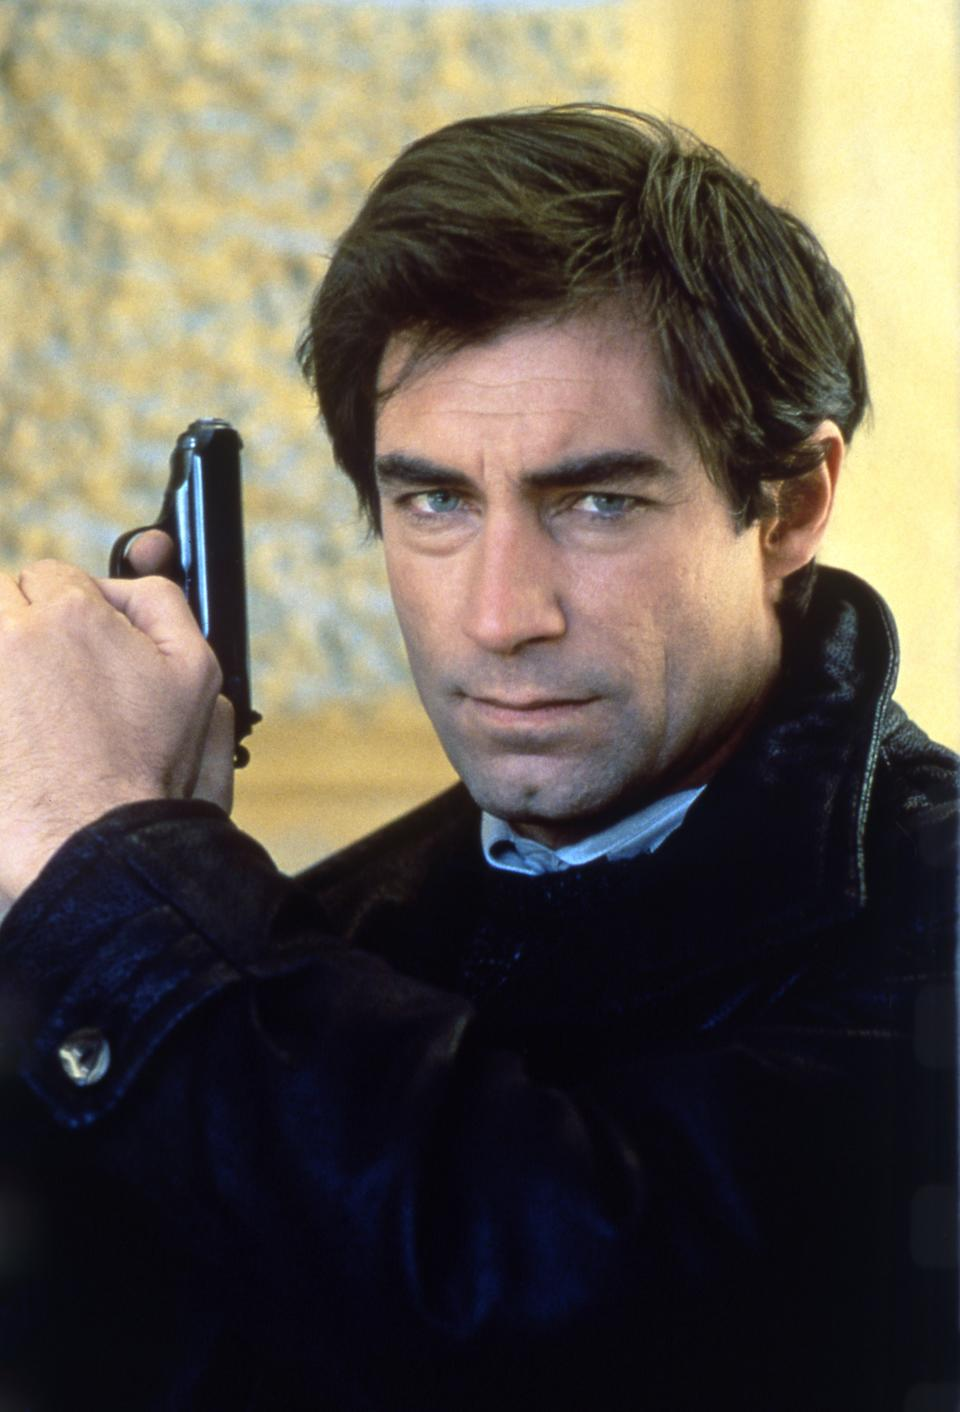 """Actor Timothy Dalton on the set of """"The Living Daylights"""". (Photo by Sunset Boulevard/Corbis via Getty Images)"""